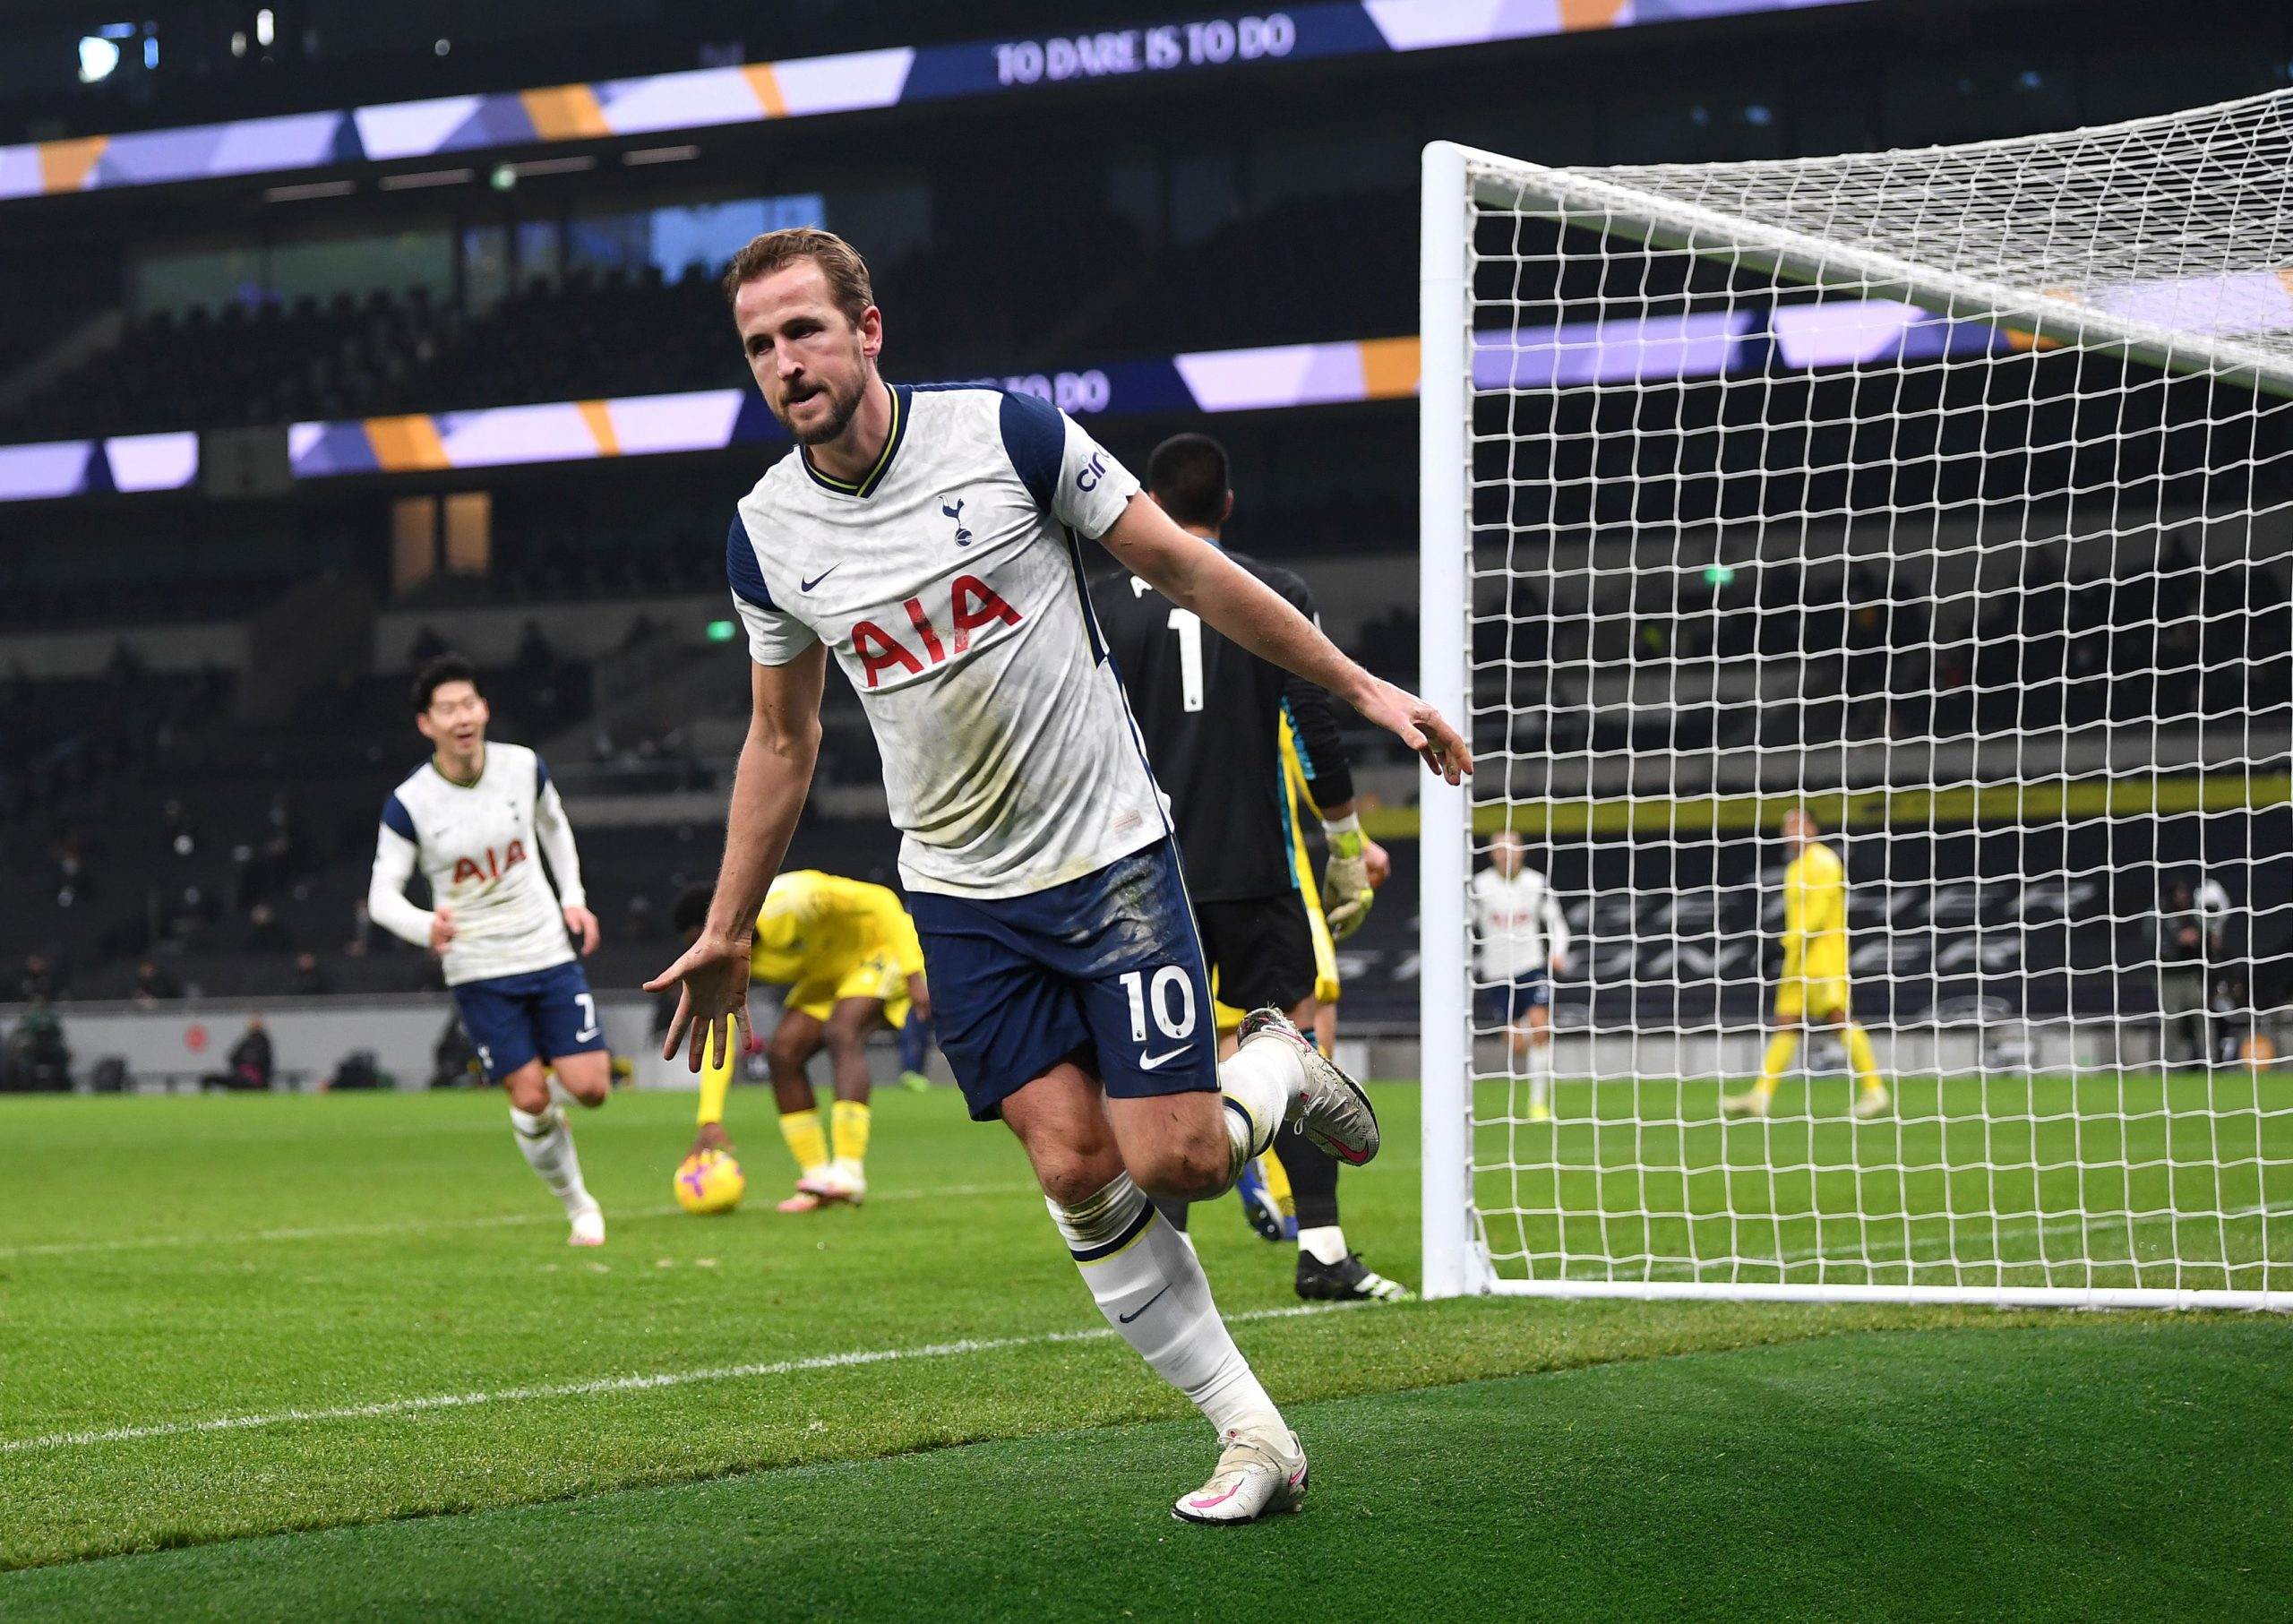 Harry Kane put Tottenham 1-0 up but they succumbed to an Ivan Cavaleiro goal late on. (GETTY Images)